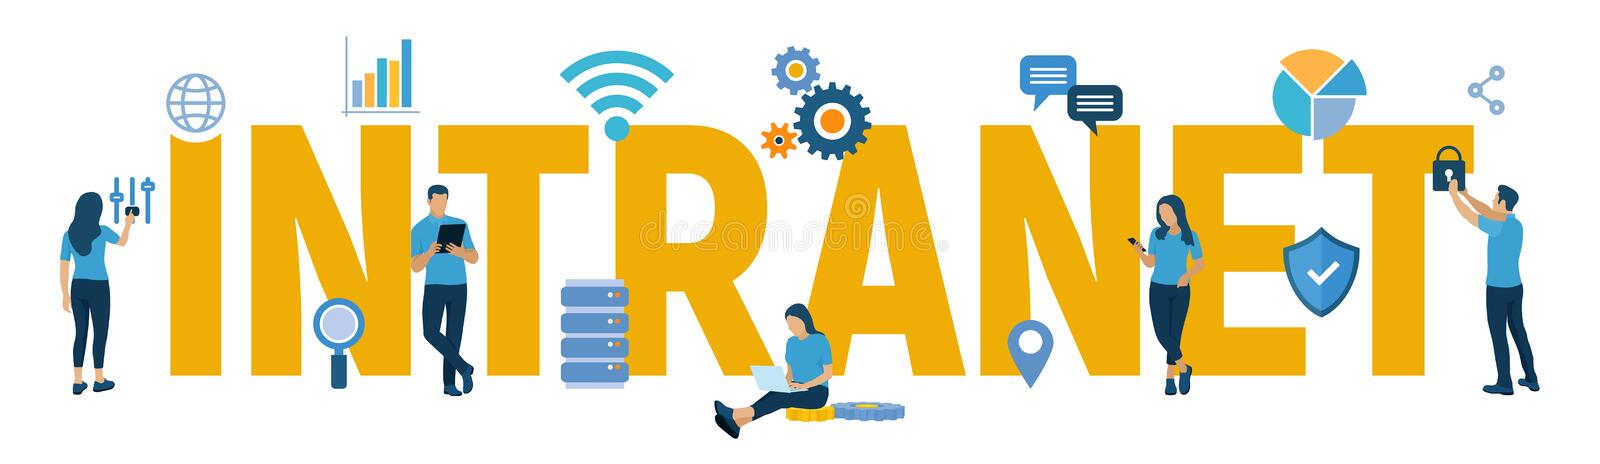 INTRANET. Global Network Connection Technology. Intranet Business Corporate communication document management system dms. Business. Team. Vector illustration stock illustration